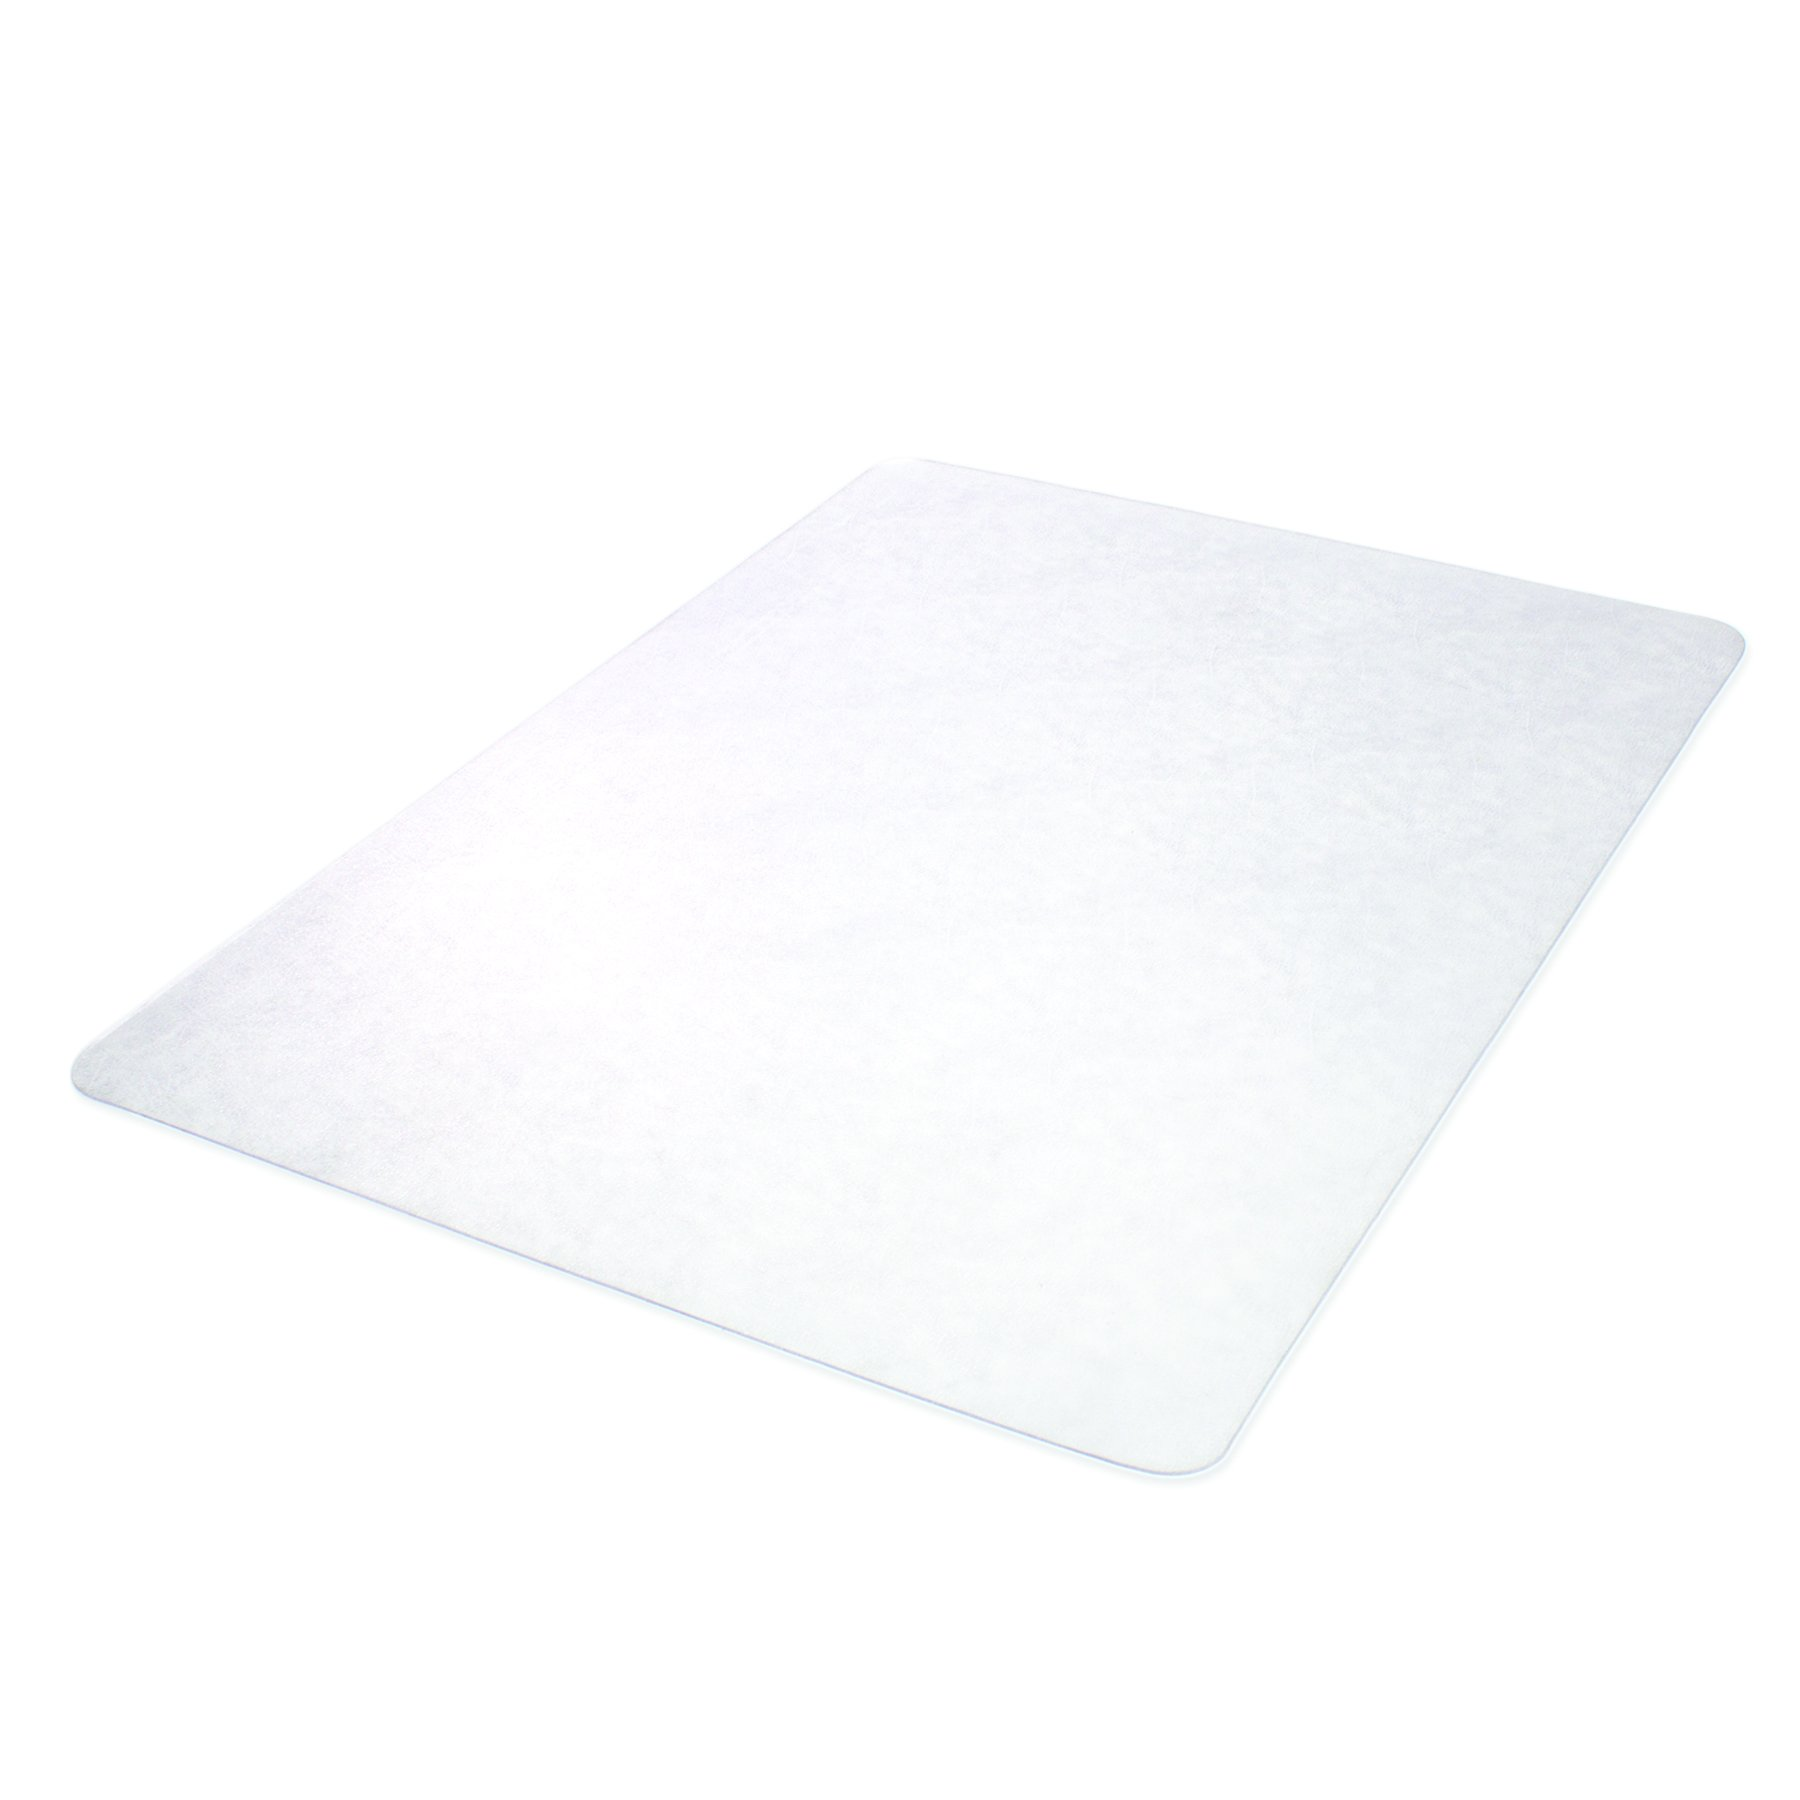 Deflecto SuperMat Clear Chair Mat, Hard Floor Use, Rectangle, Beveled Edge, 45 x 53 Inches (CM24243) by Deflecto